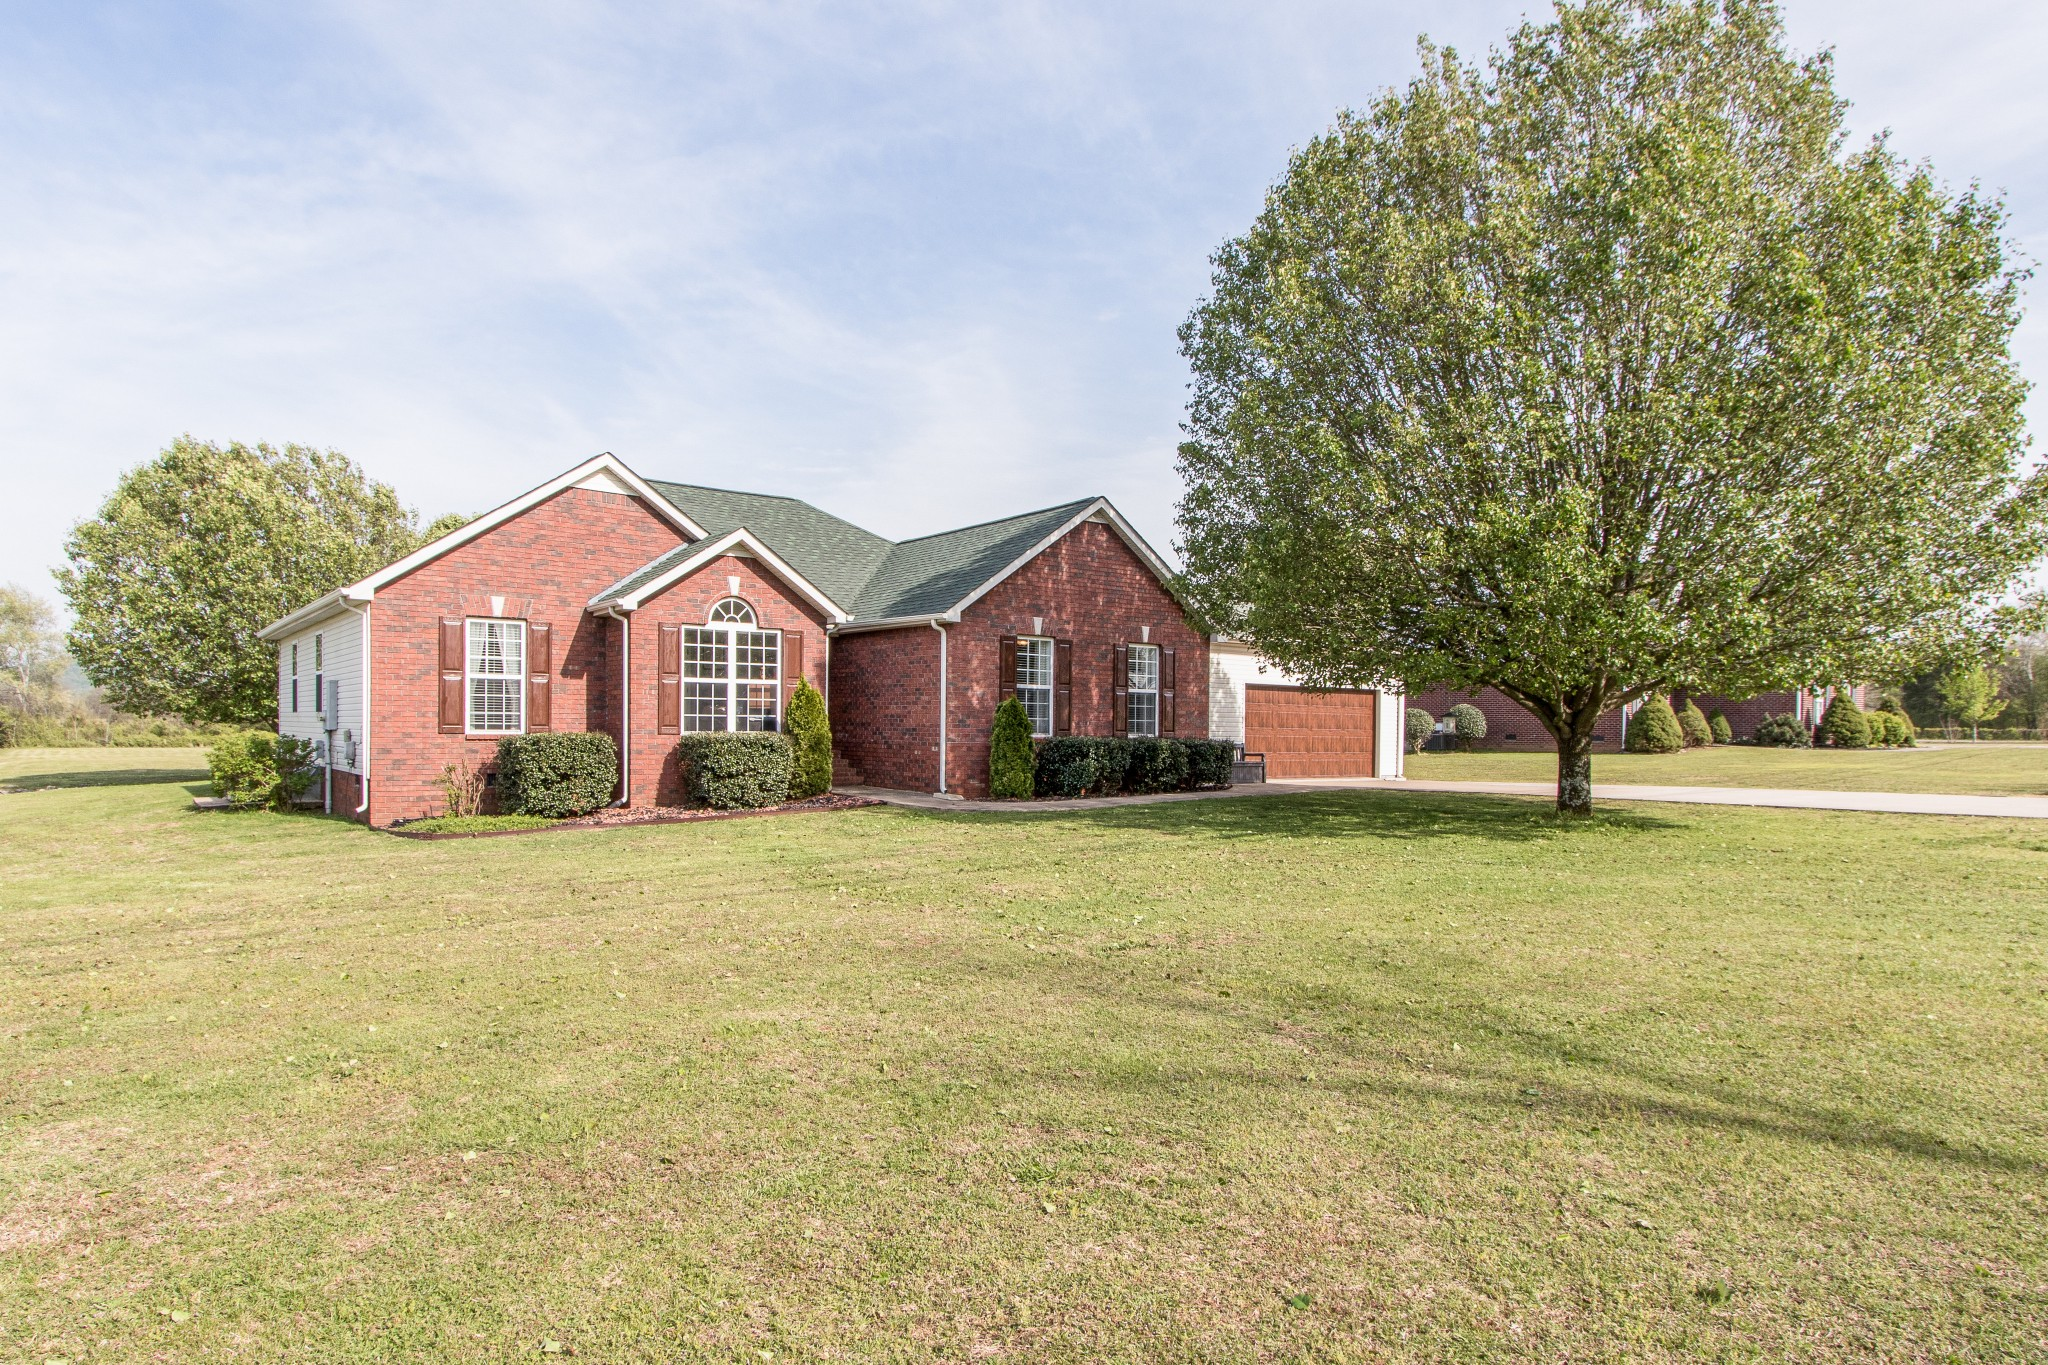 14064 Mount Pleasant Rd, Rockvale, TN 37153 - Rockvale, TN real estate listing